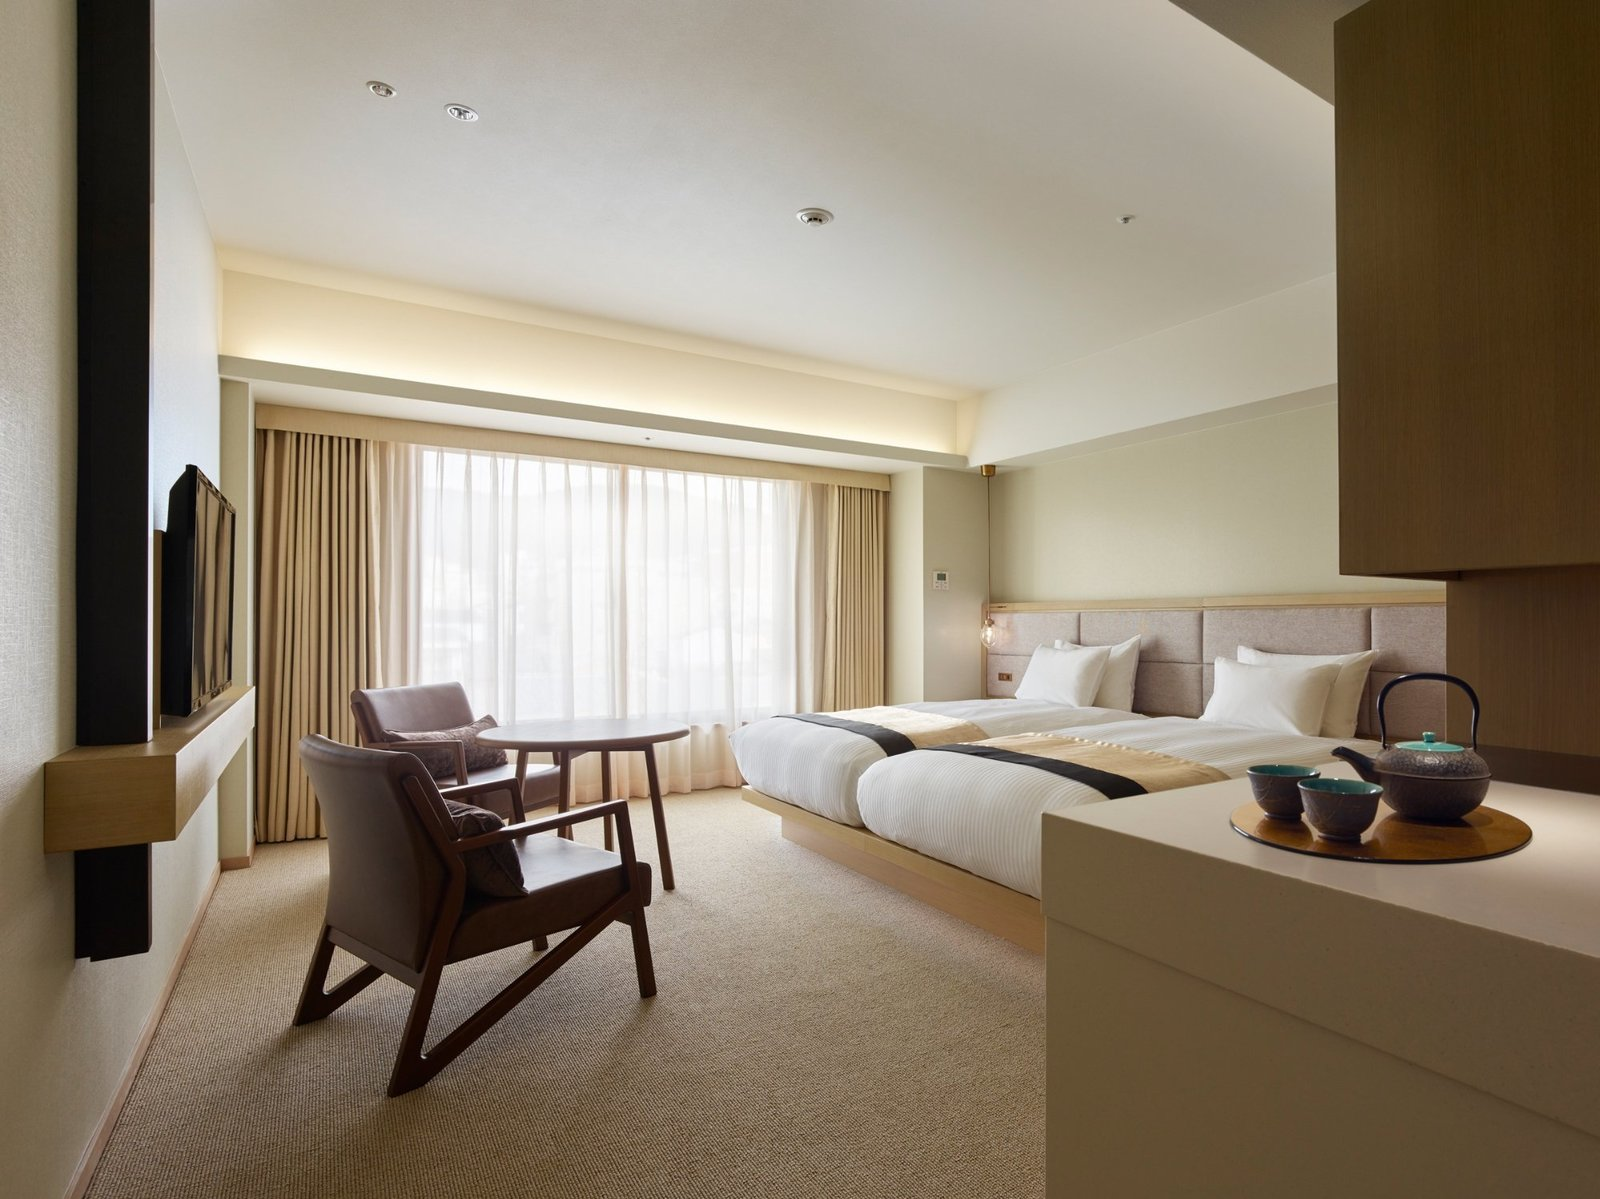 Bedroom, Pendant Lighting, Chair, Bed, and Carpet Floor  Hotel The Celestine Kyoto Gion